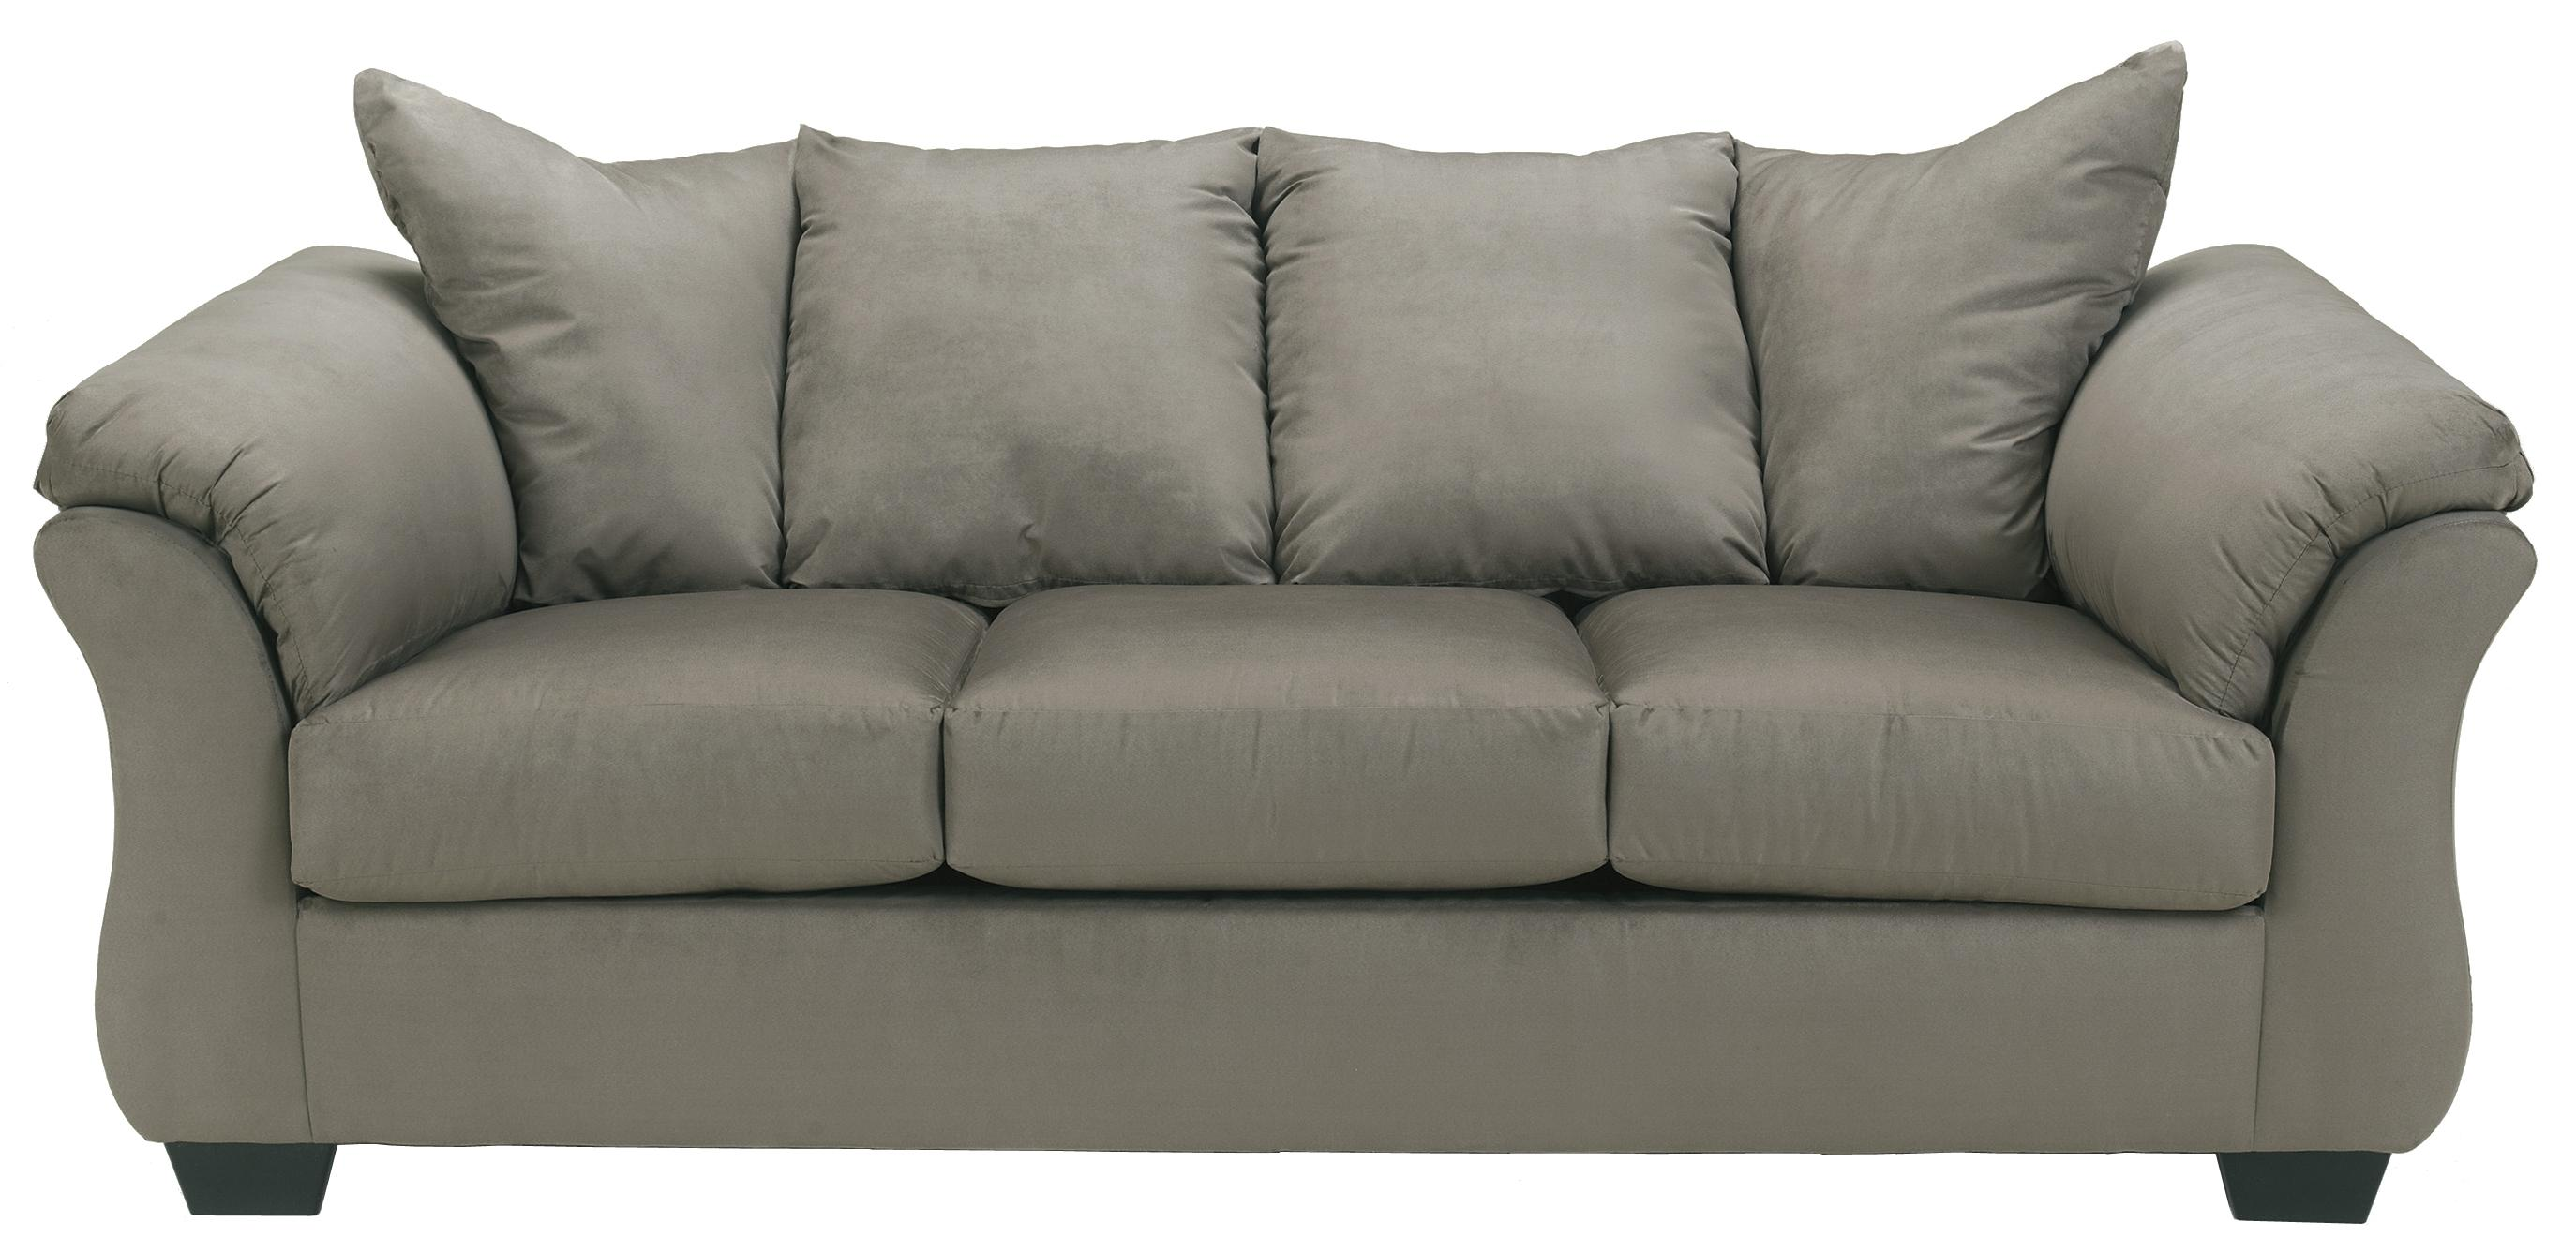 Signature Design by Ashley Darcy - Cobblestone Stationary Sofa - Item Number: 7500538